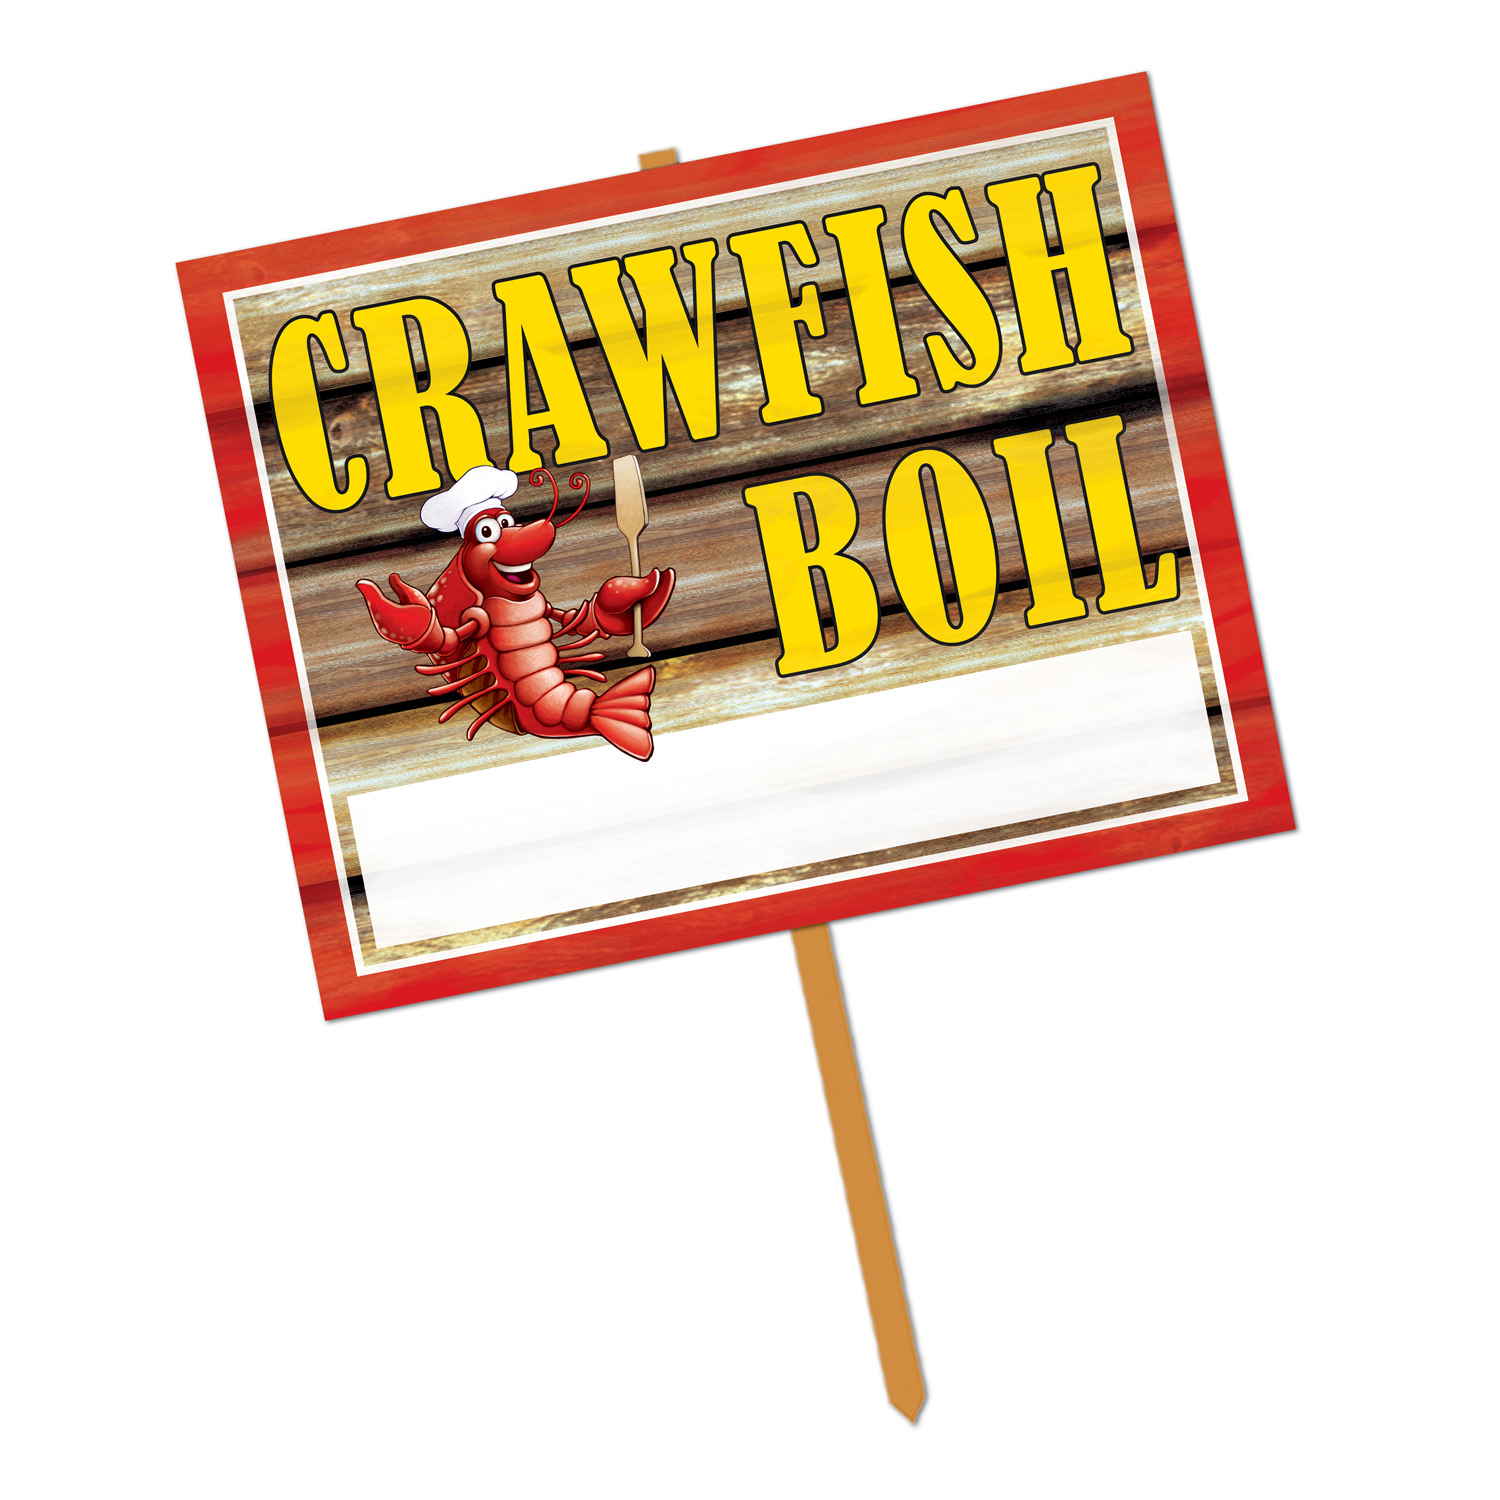 Crawfish Boil Yard Sign (Pack of 6) Crawfish Boil Yard Sign, decoration, mardi gras, crawfish, wholesale, inexpensive, bulk